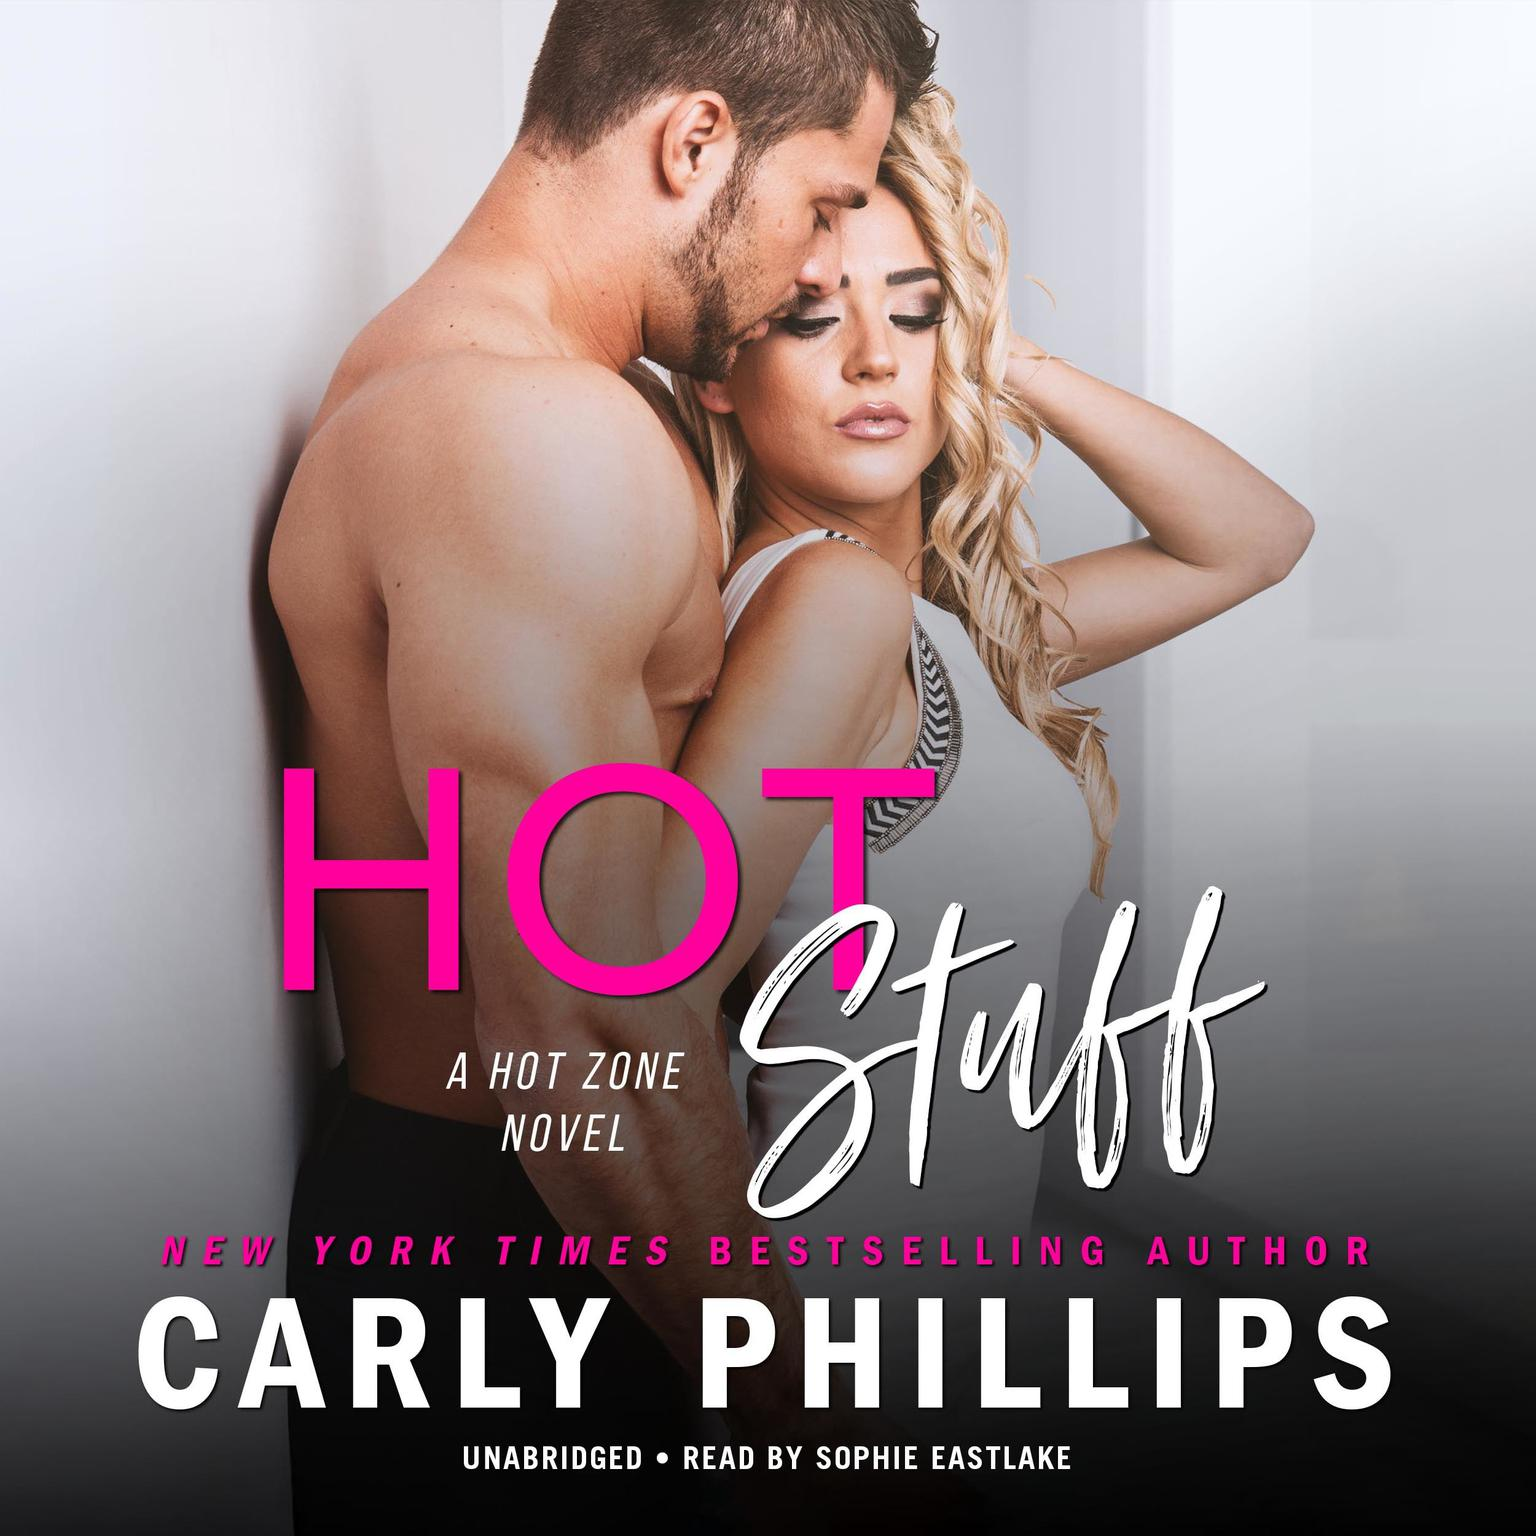 The Hot Zone series